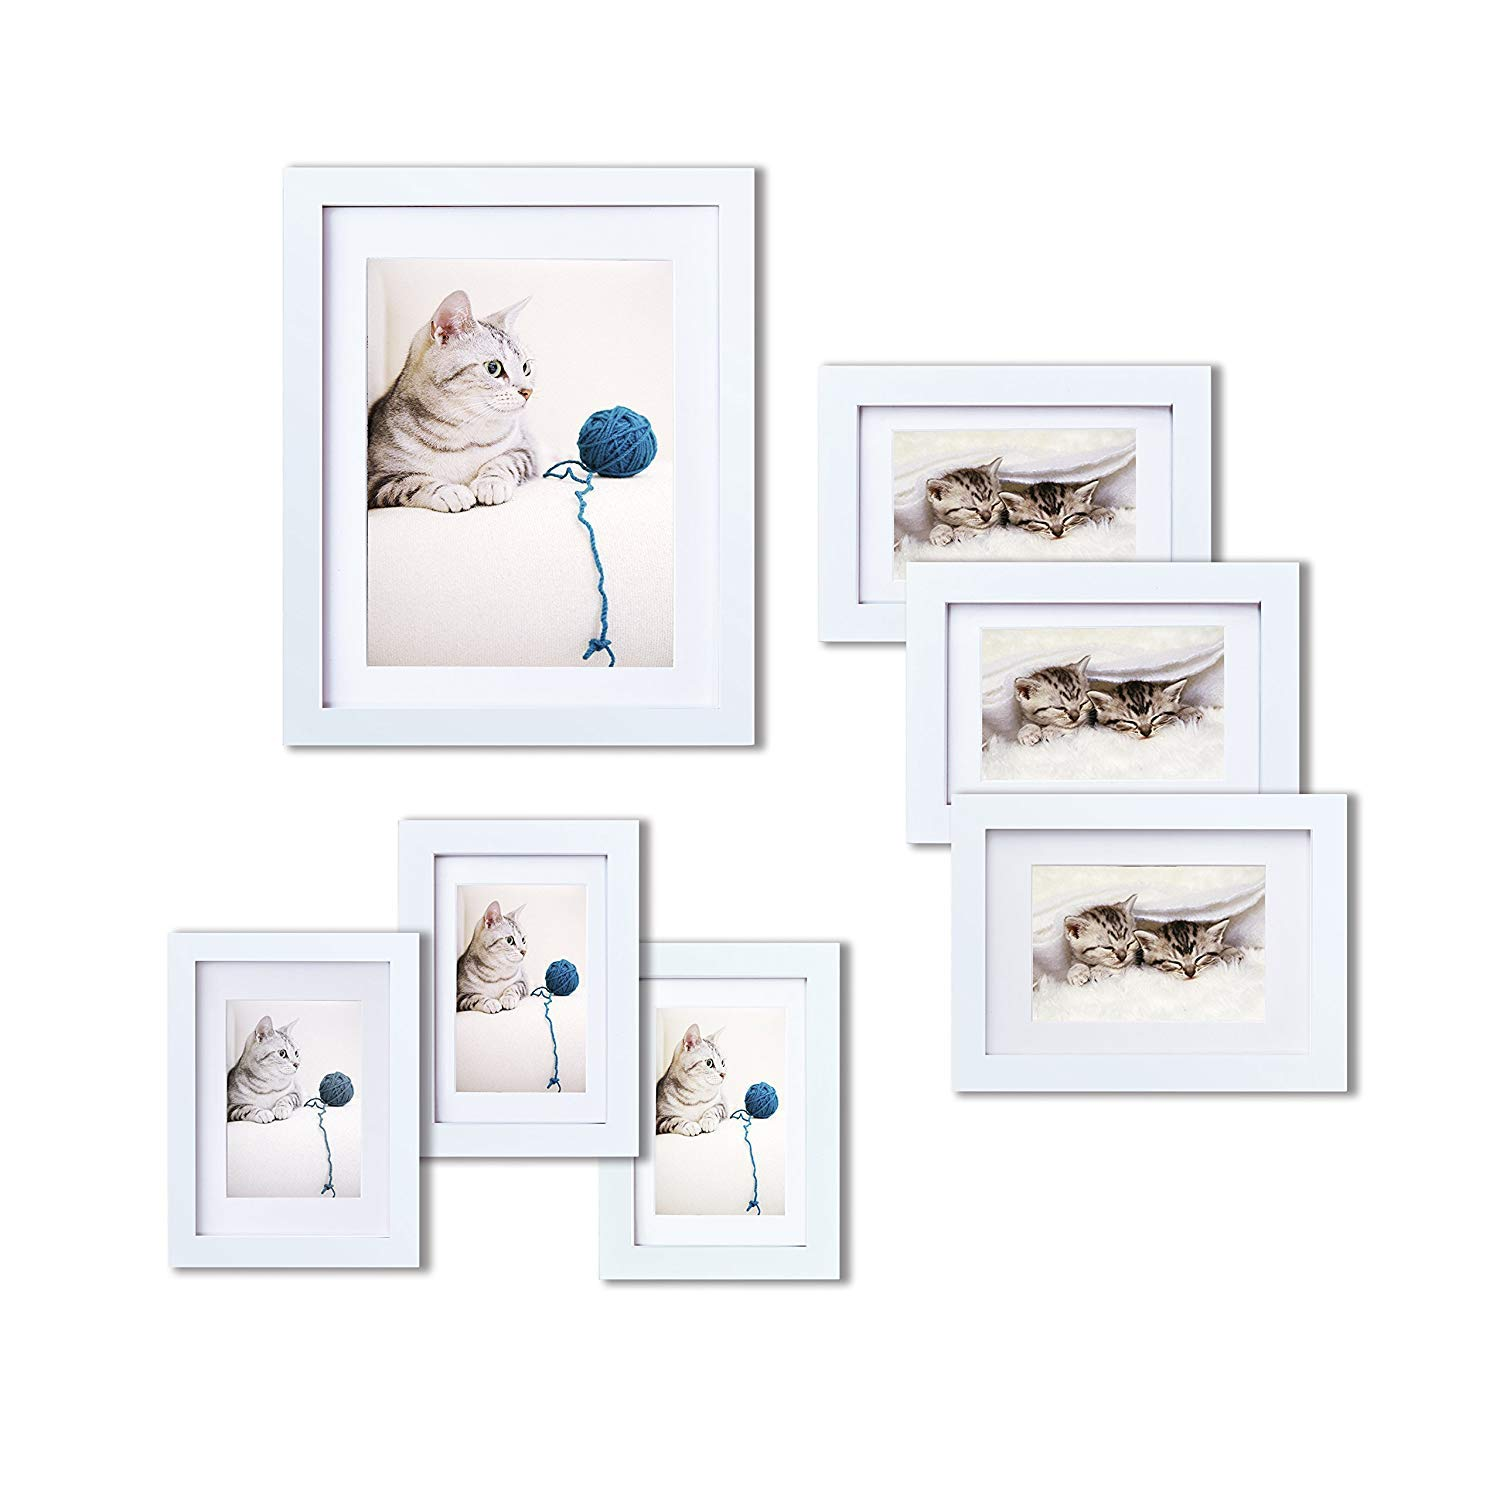 INNOCHEER Picture Frame Set of 7: Solid Wood, Three 4x6 Inches - Three 5x7 Inches - One 8x10 Inches by INNOCHEER